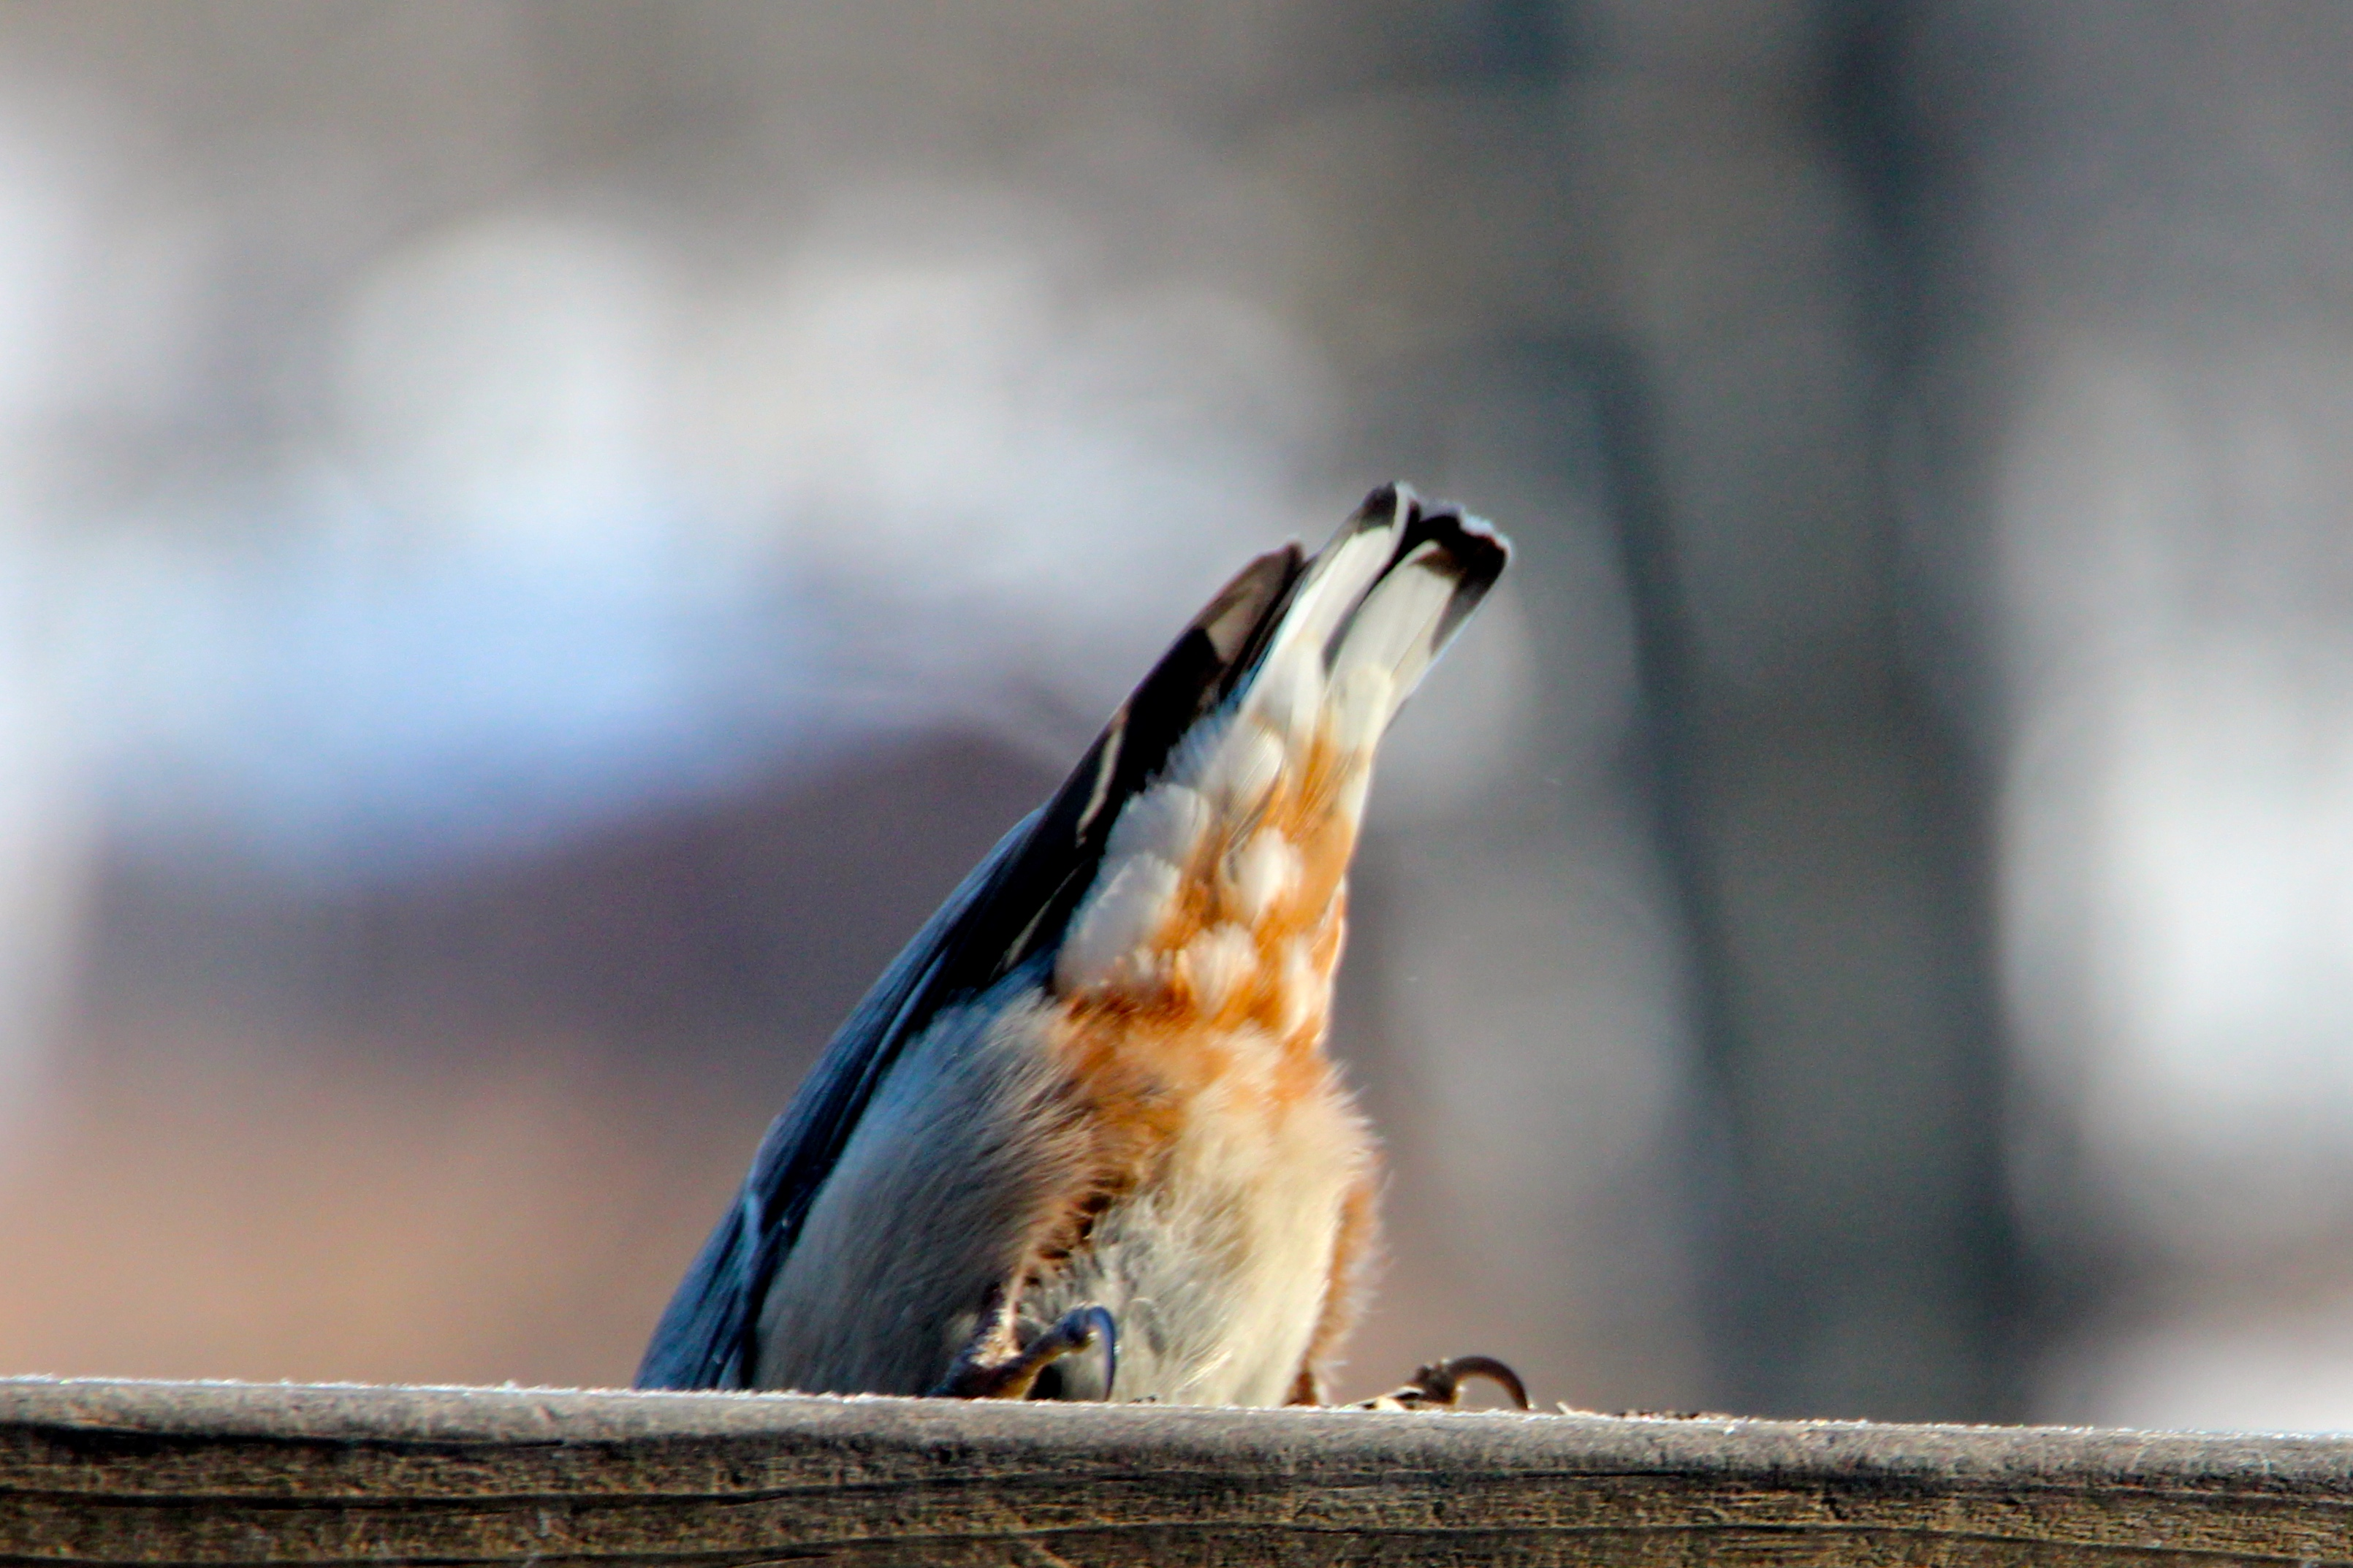 Nuthatch Tail feathers 2.23.15